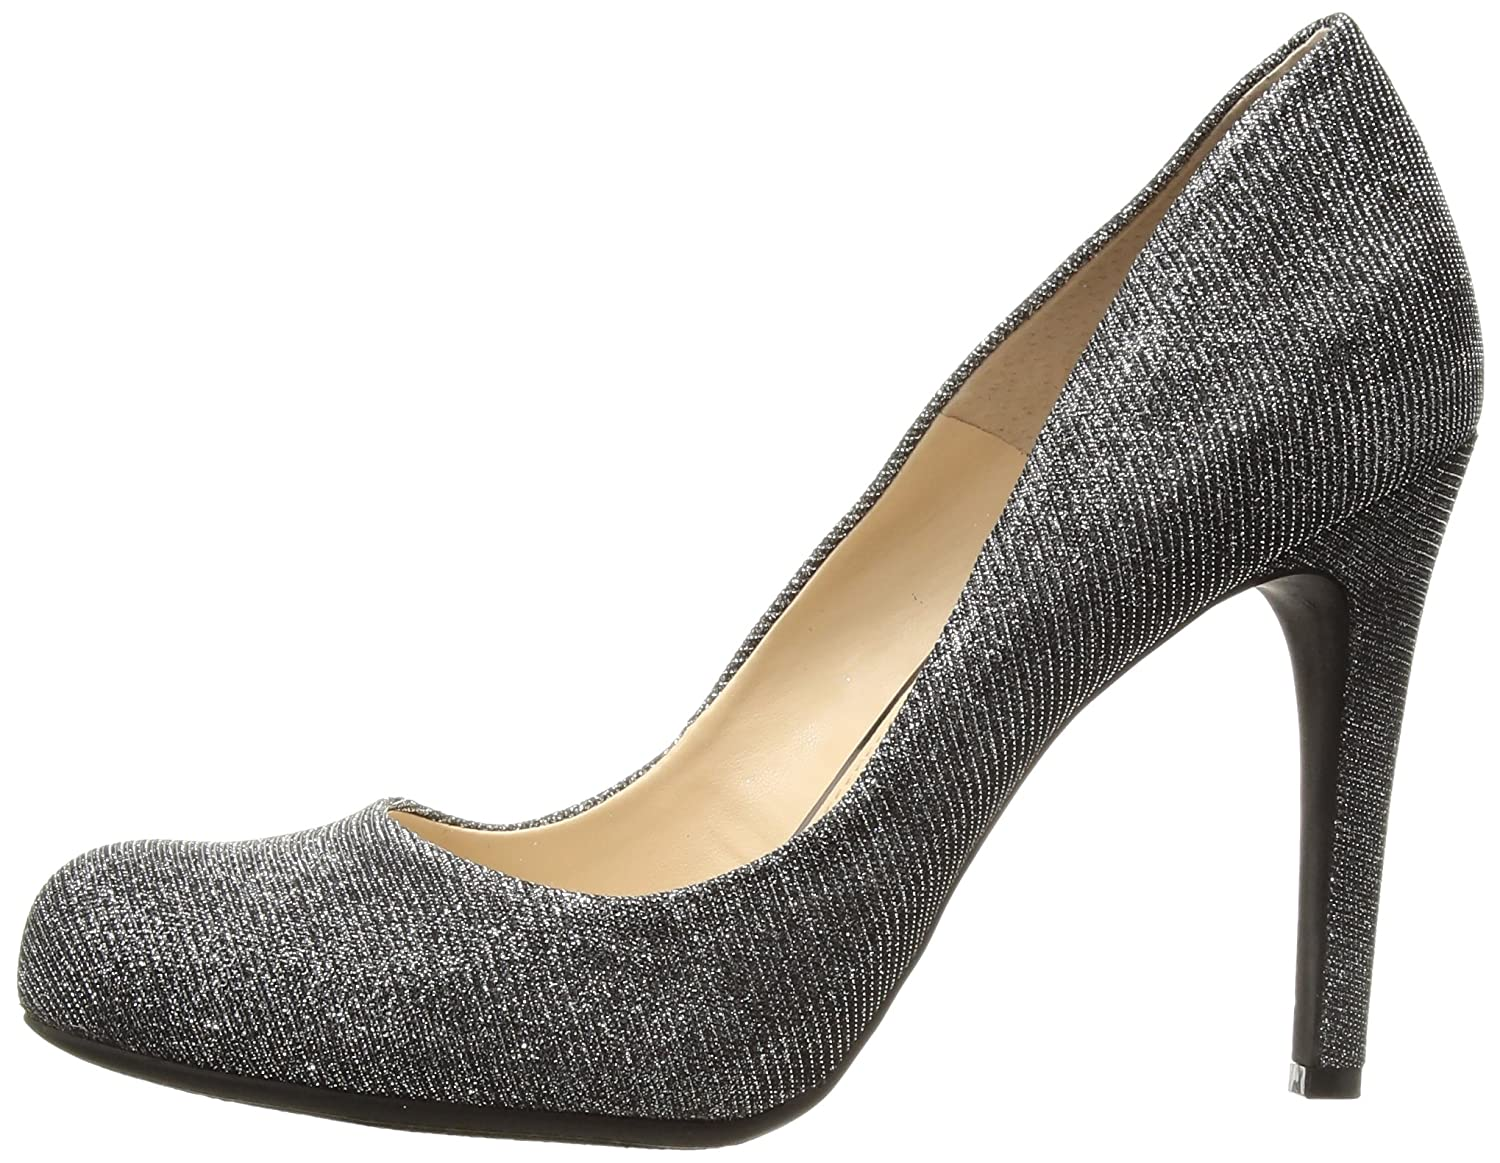 Jessica Simpson Women's Calie Dress Pump B075H6NPN3 5 B(M) US|Pewter Multi